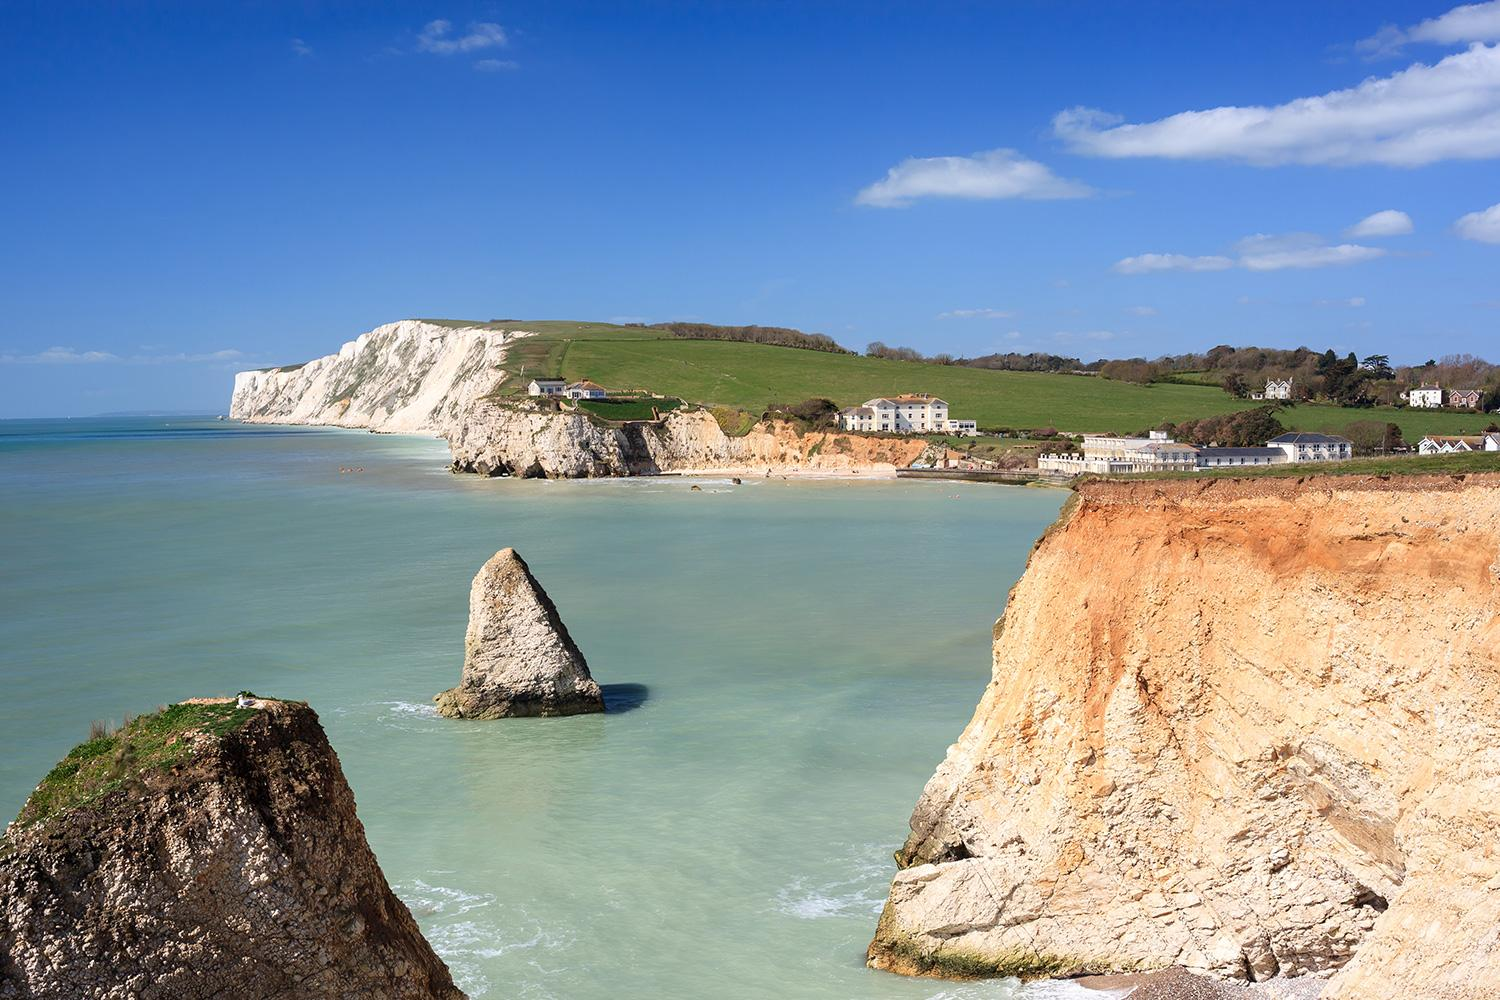 Freshwater Bay on the Isle of Wight coast